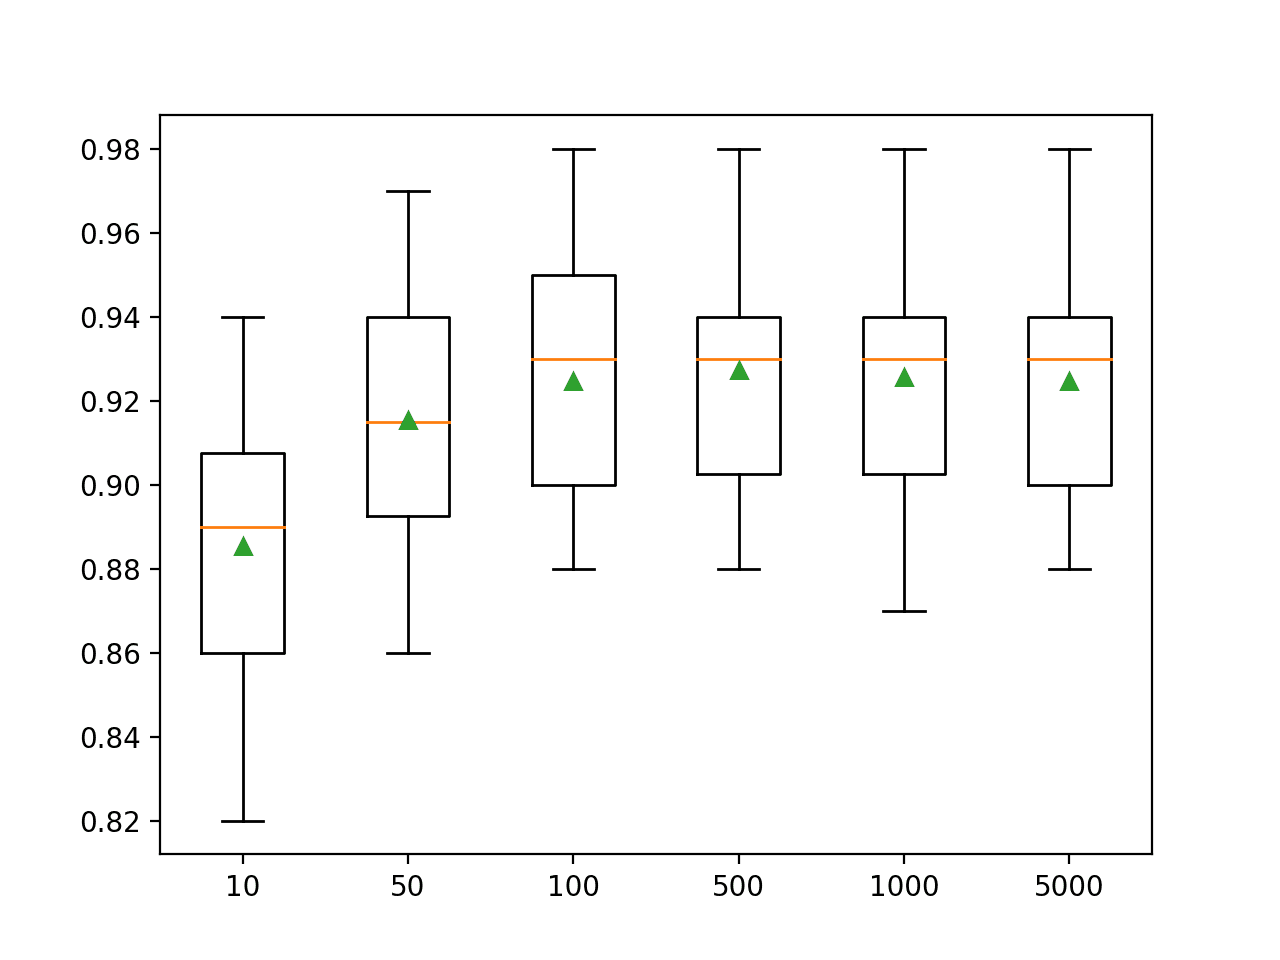 Box Plots of XGBoost Ensemble Size vs. Classification Accuracy